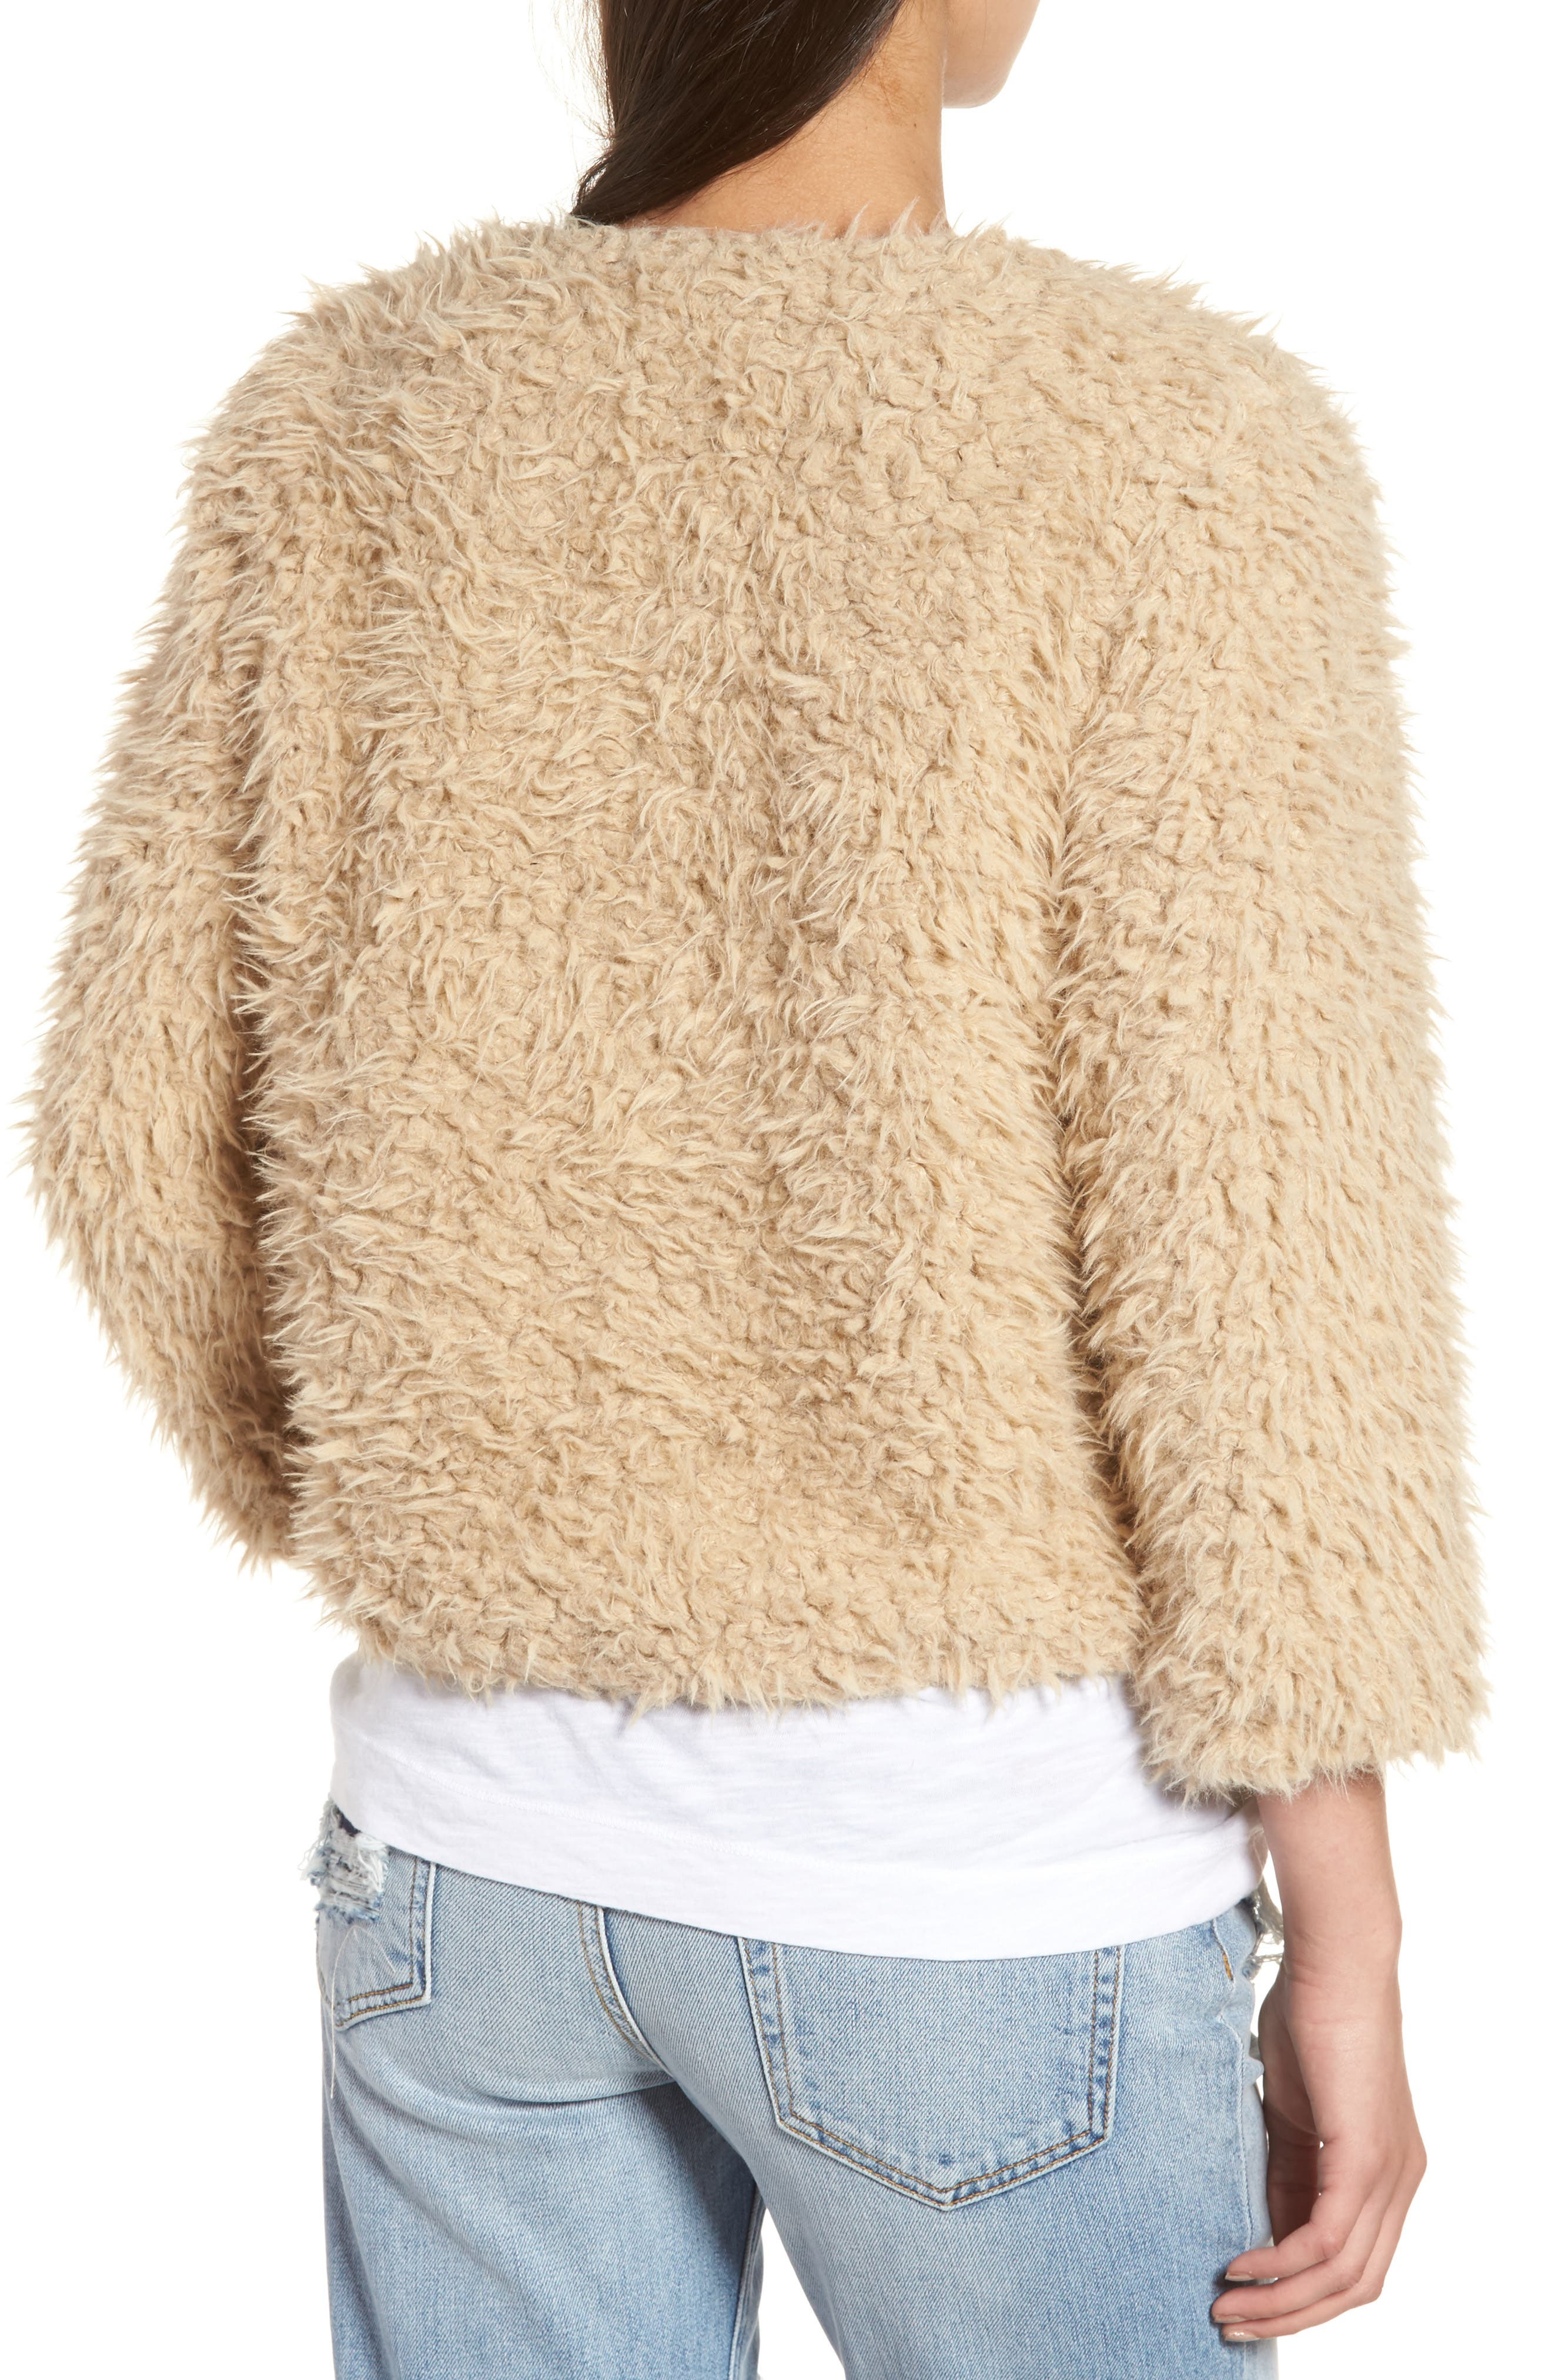 Macy Faux Fur Jacket,                             Alternate thumbnail 2, color,                             251